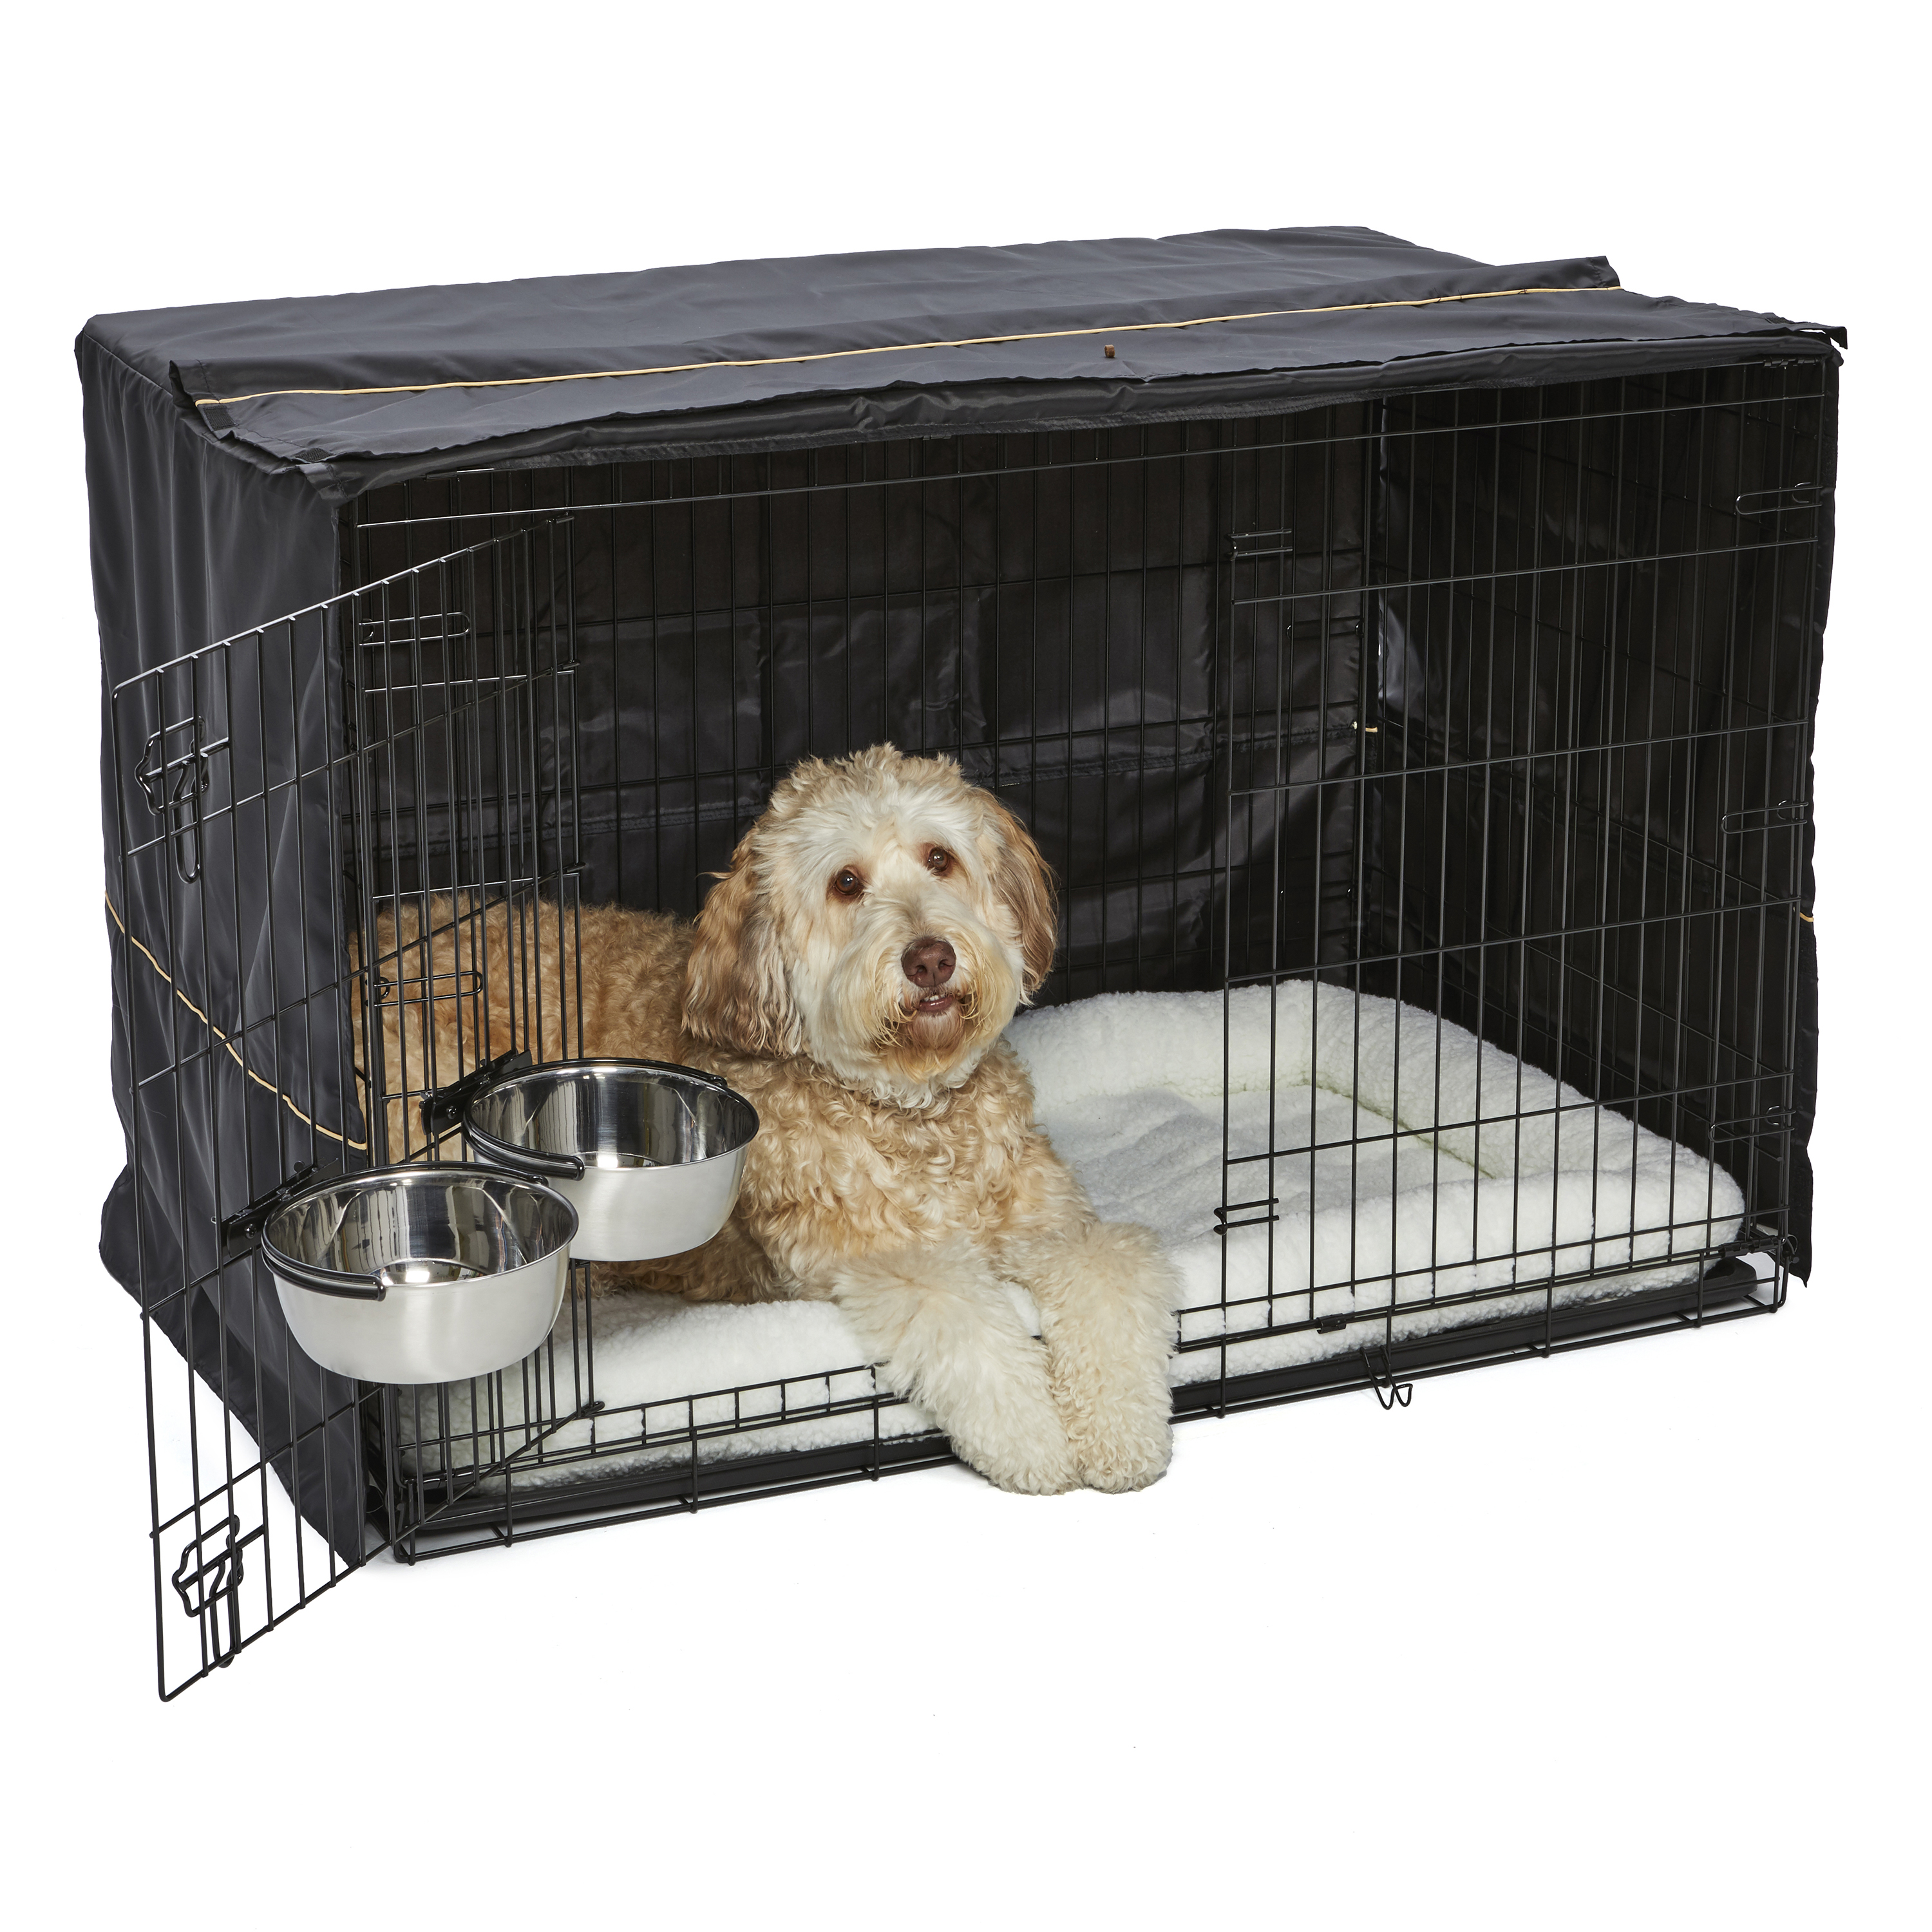 MidWest Homes for Pets XL Dog Crate Starter Kit | One 2-Door iCrate, Pet Bed, Crate Cover & 2 Pet Bowls | 48-Inch Ideal for XL Dog Breeds